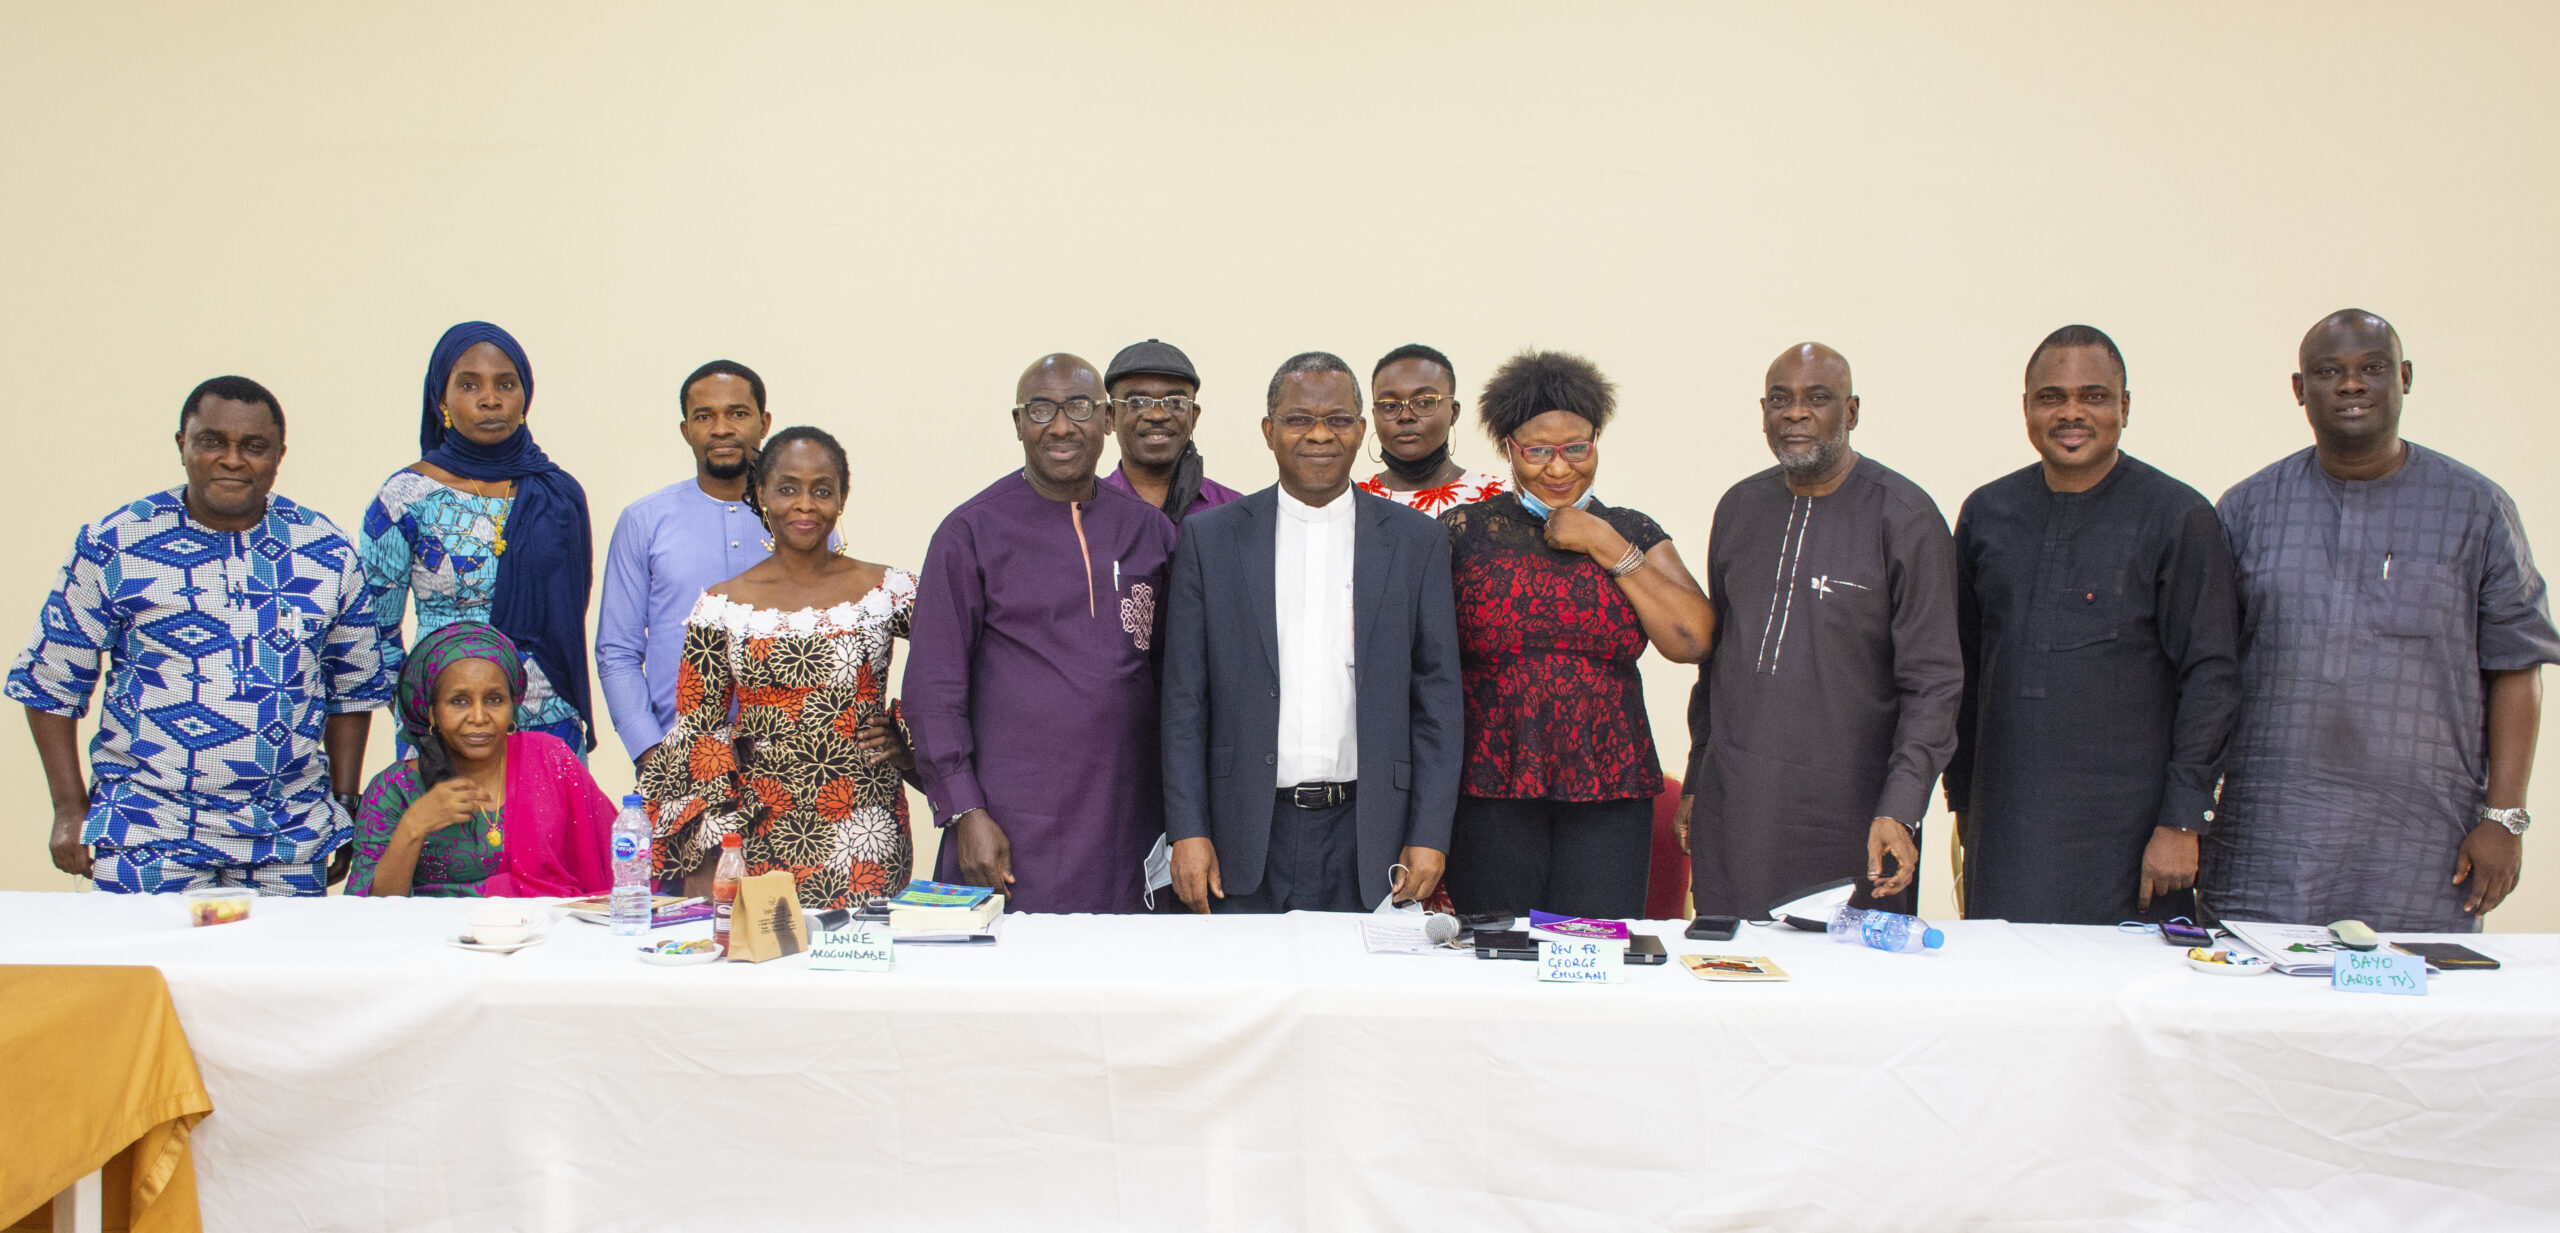 NETWORK AND ADVOCACY GROUP OF LUX TERRA LEADERSHIP FOUNDATION HOLDS SECOND MEDIA PARLEY